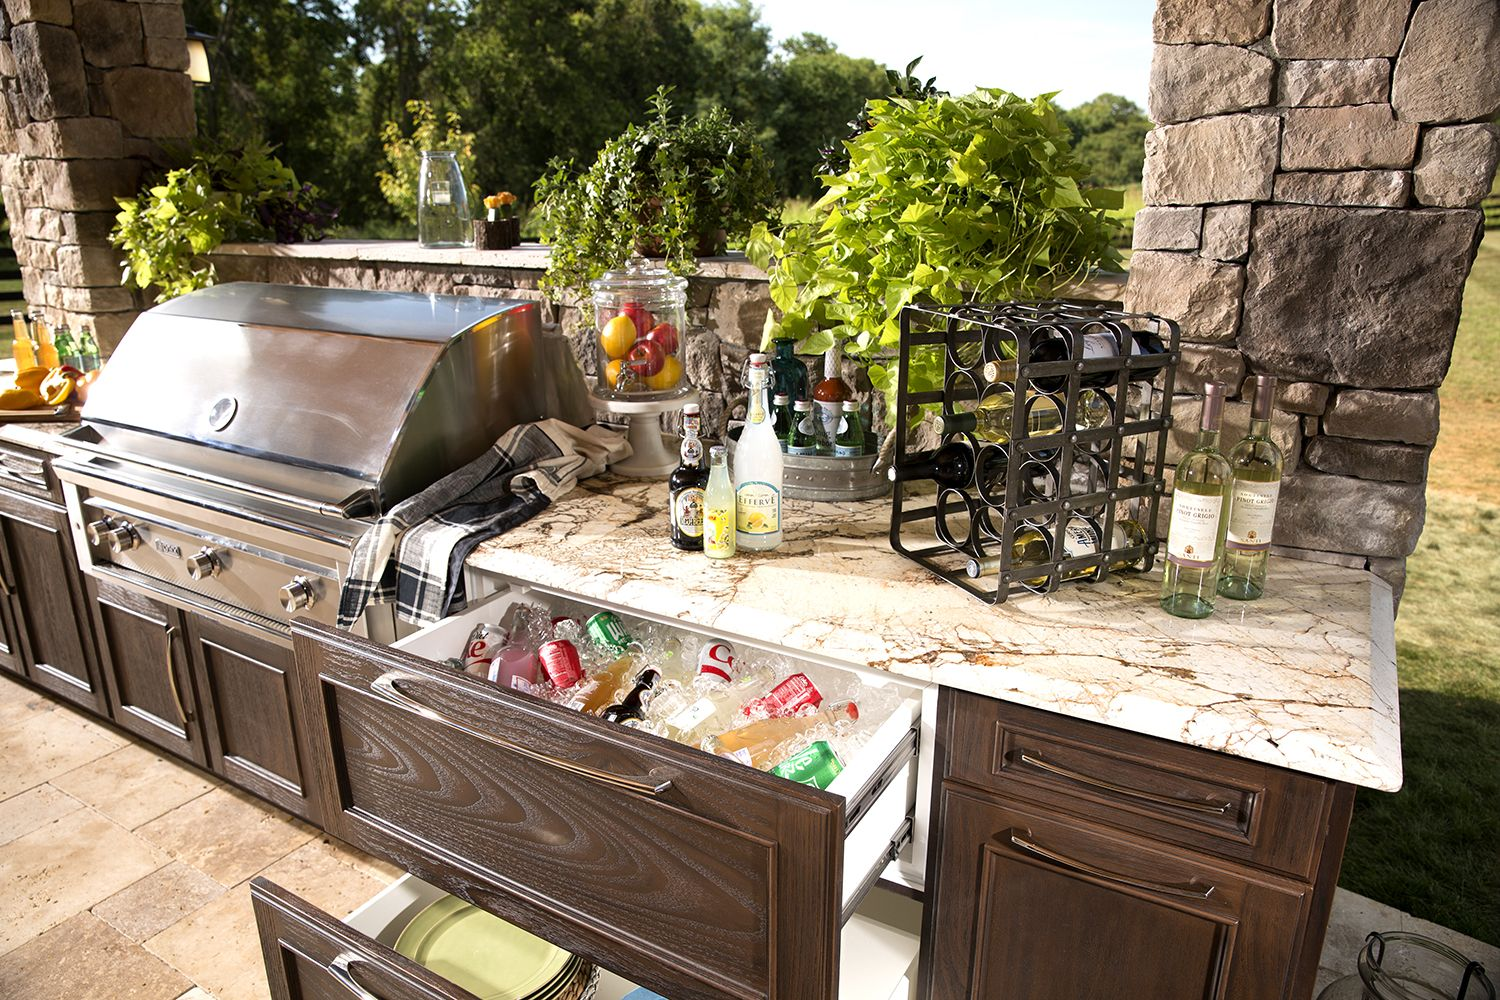 trex outdoor kitchens features customizable cabinets that provide